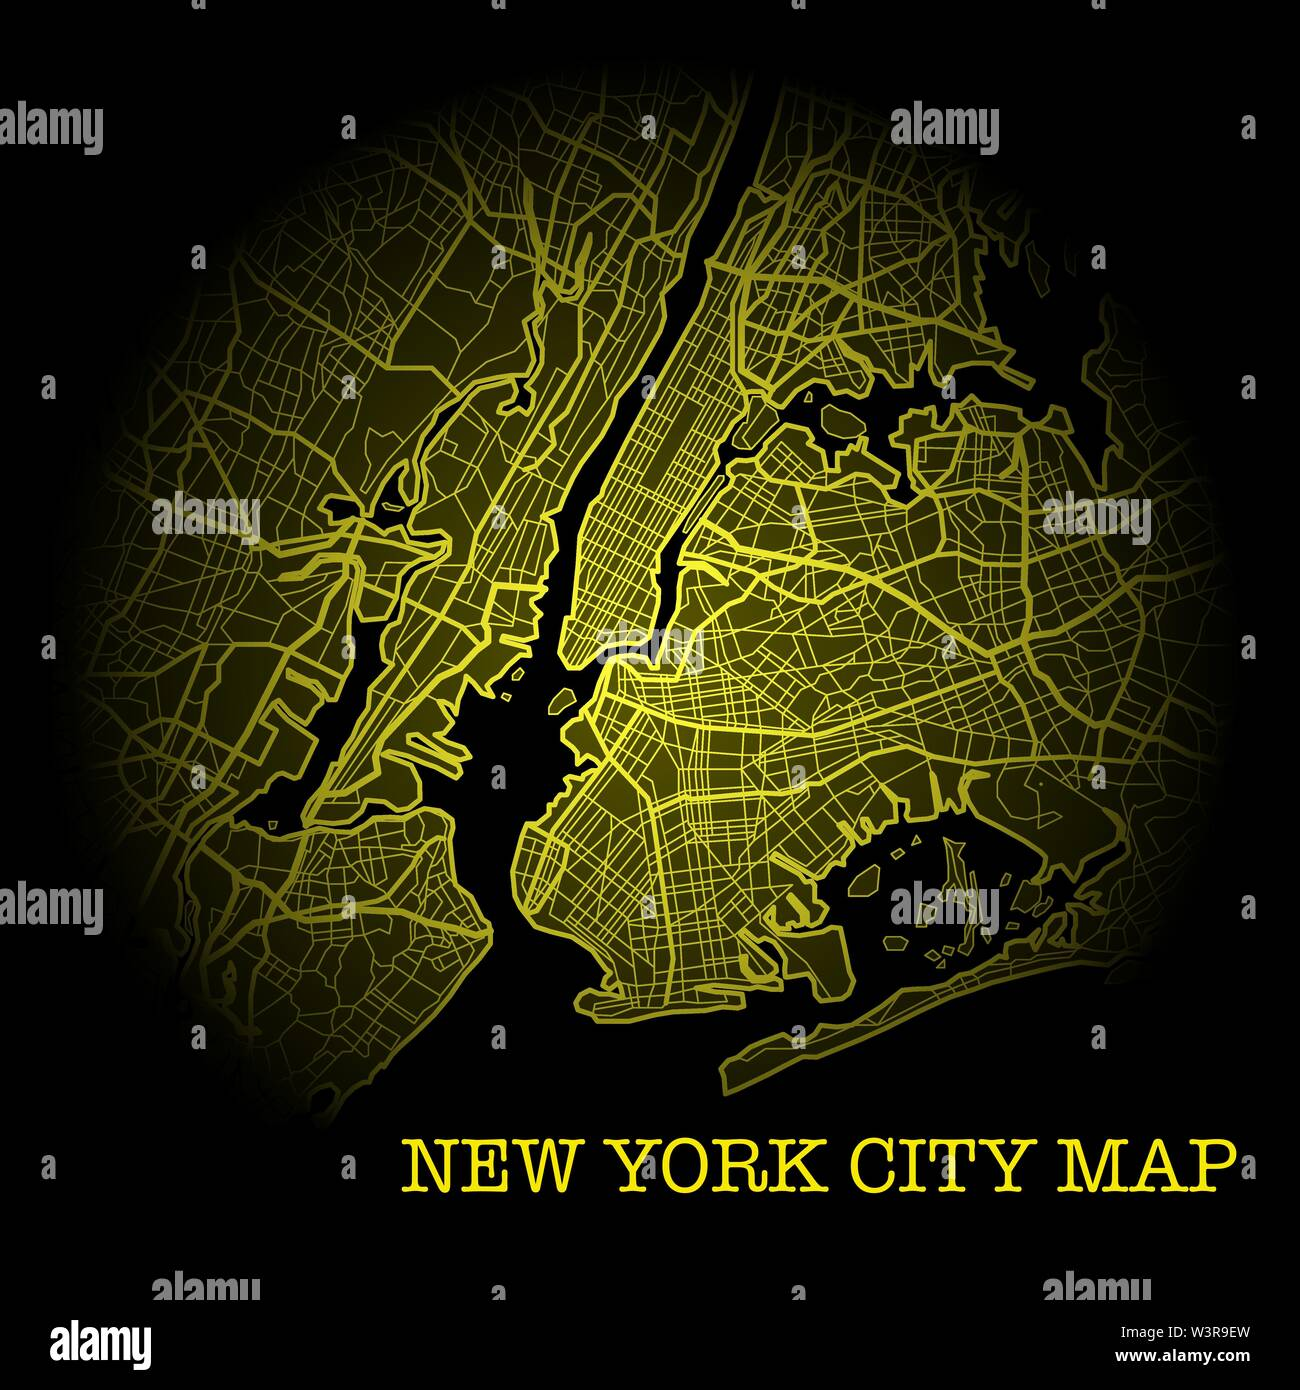 Black and yellow New York City map silhouette background - Stock Vector